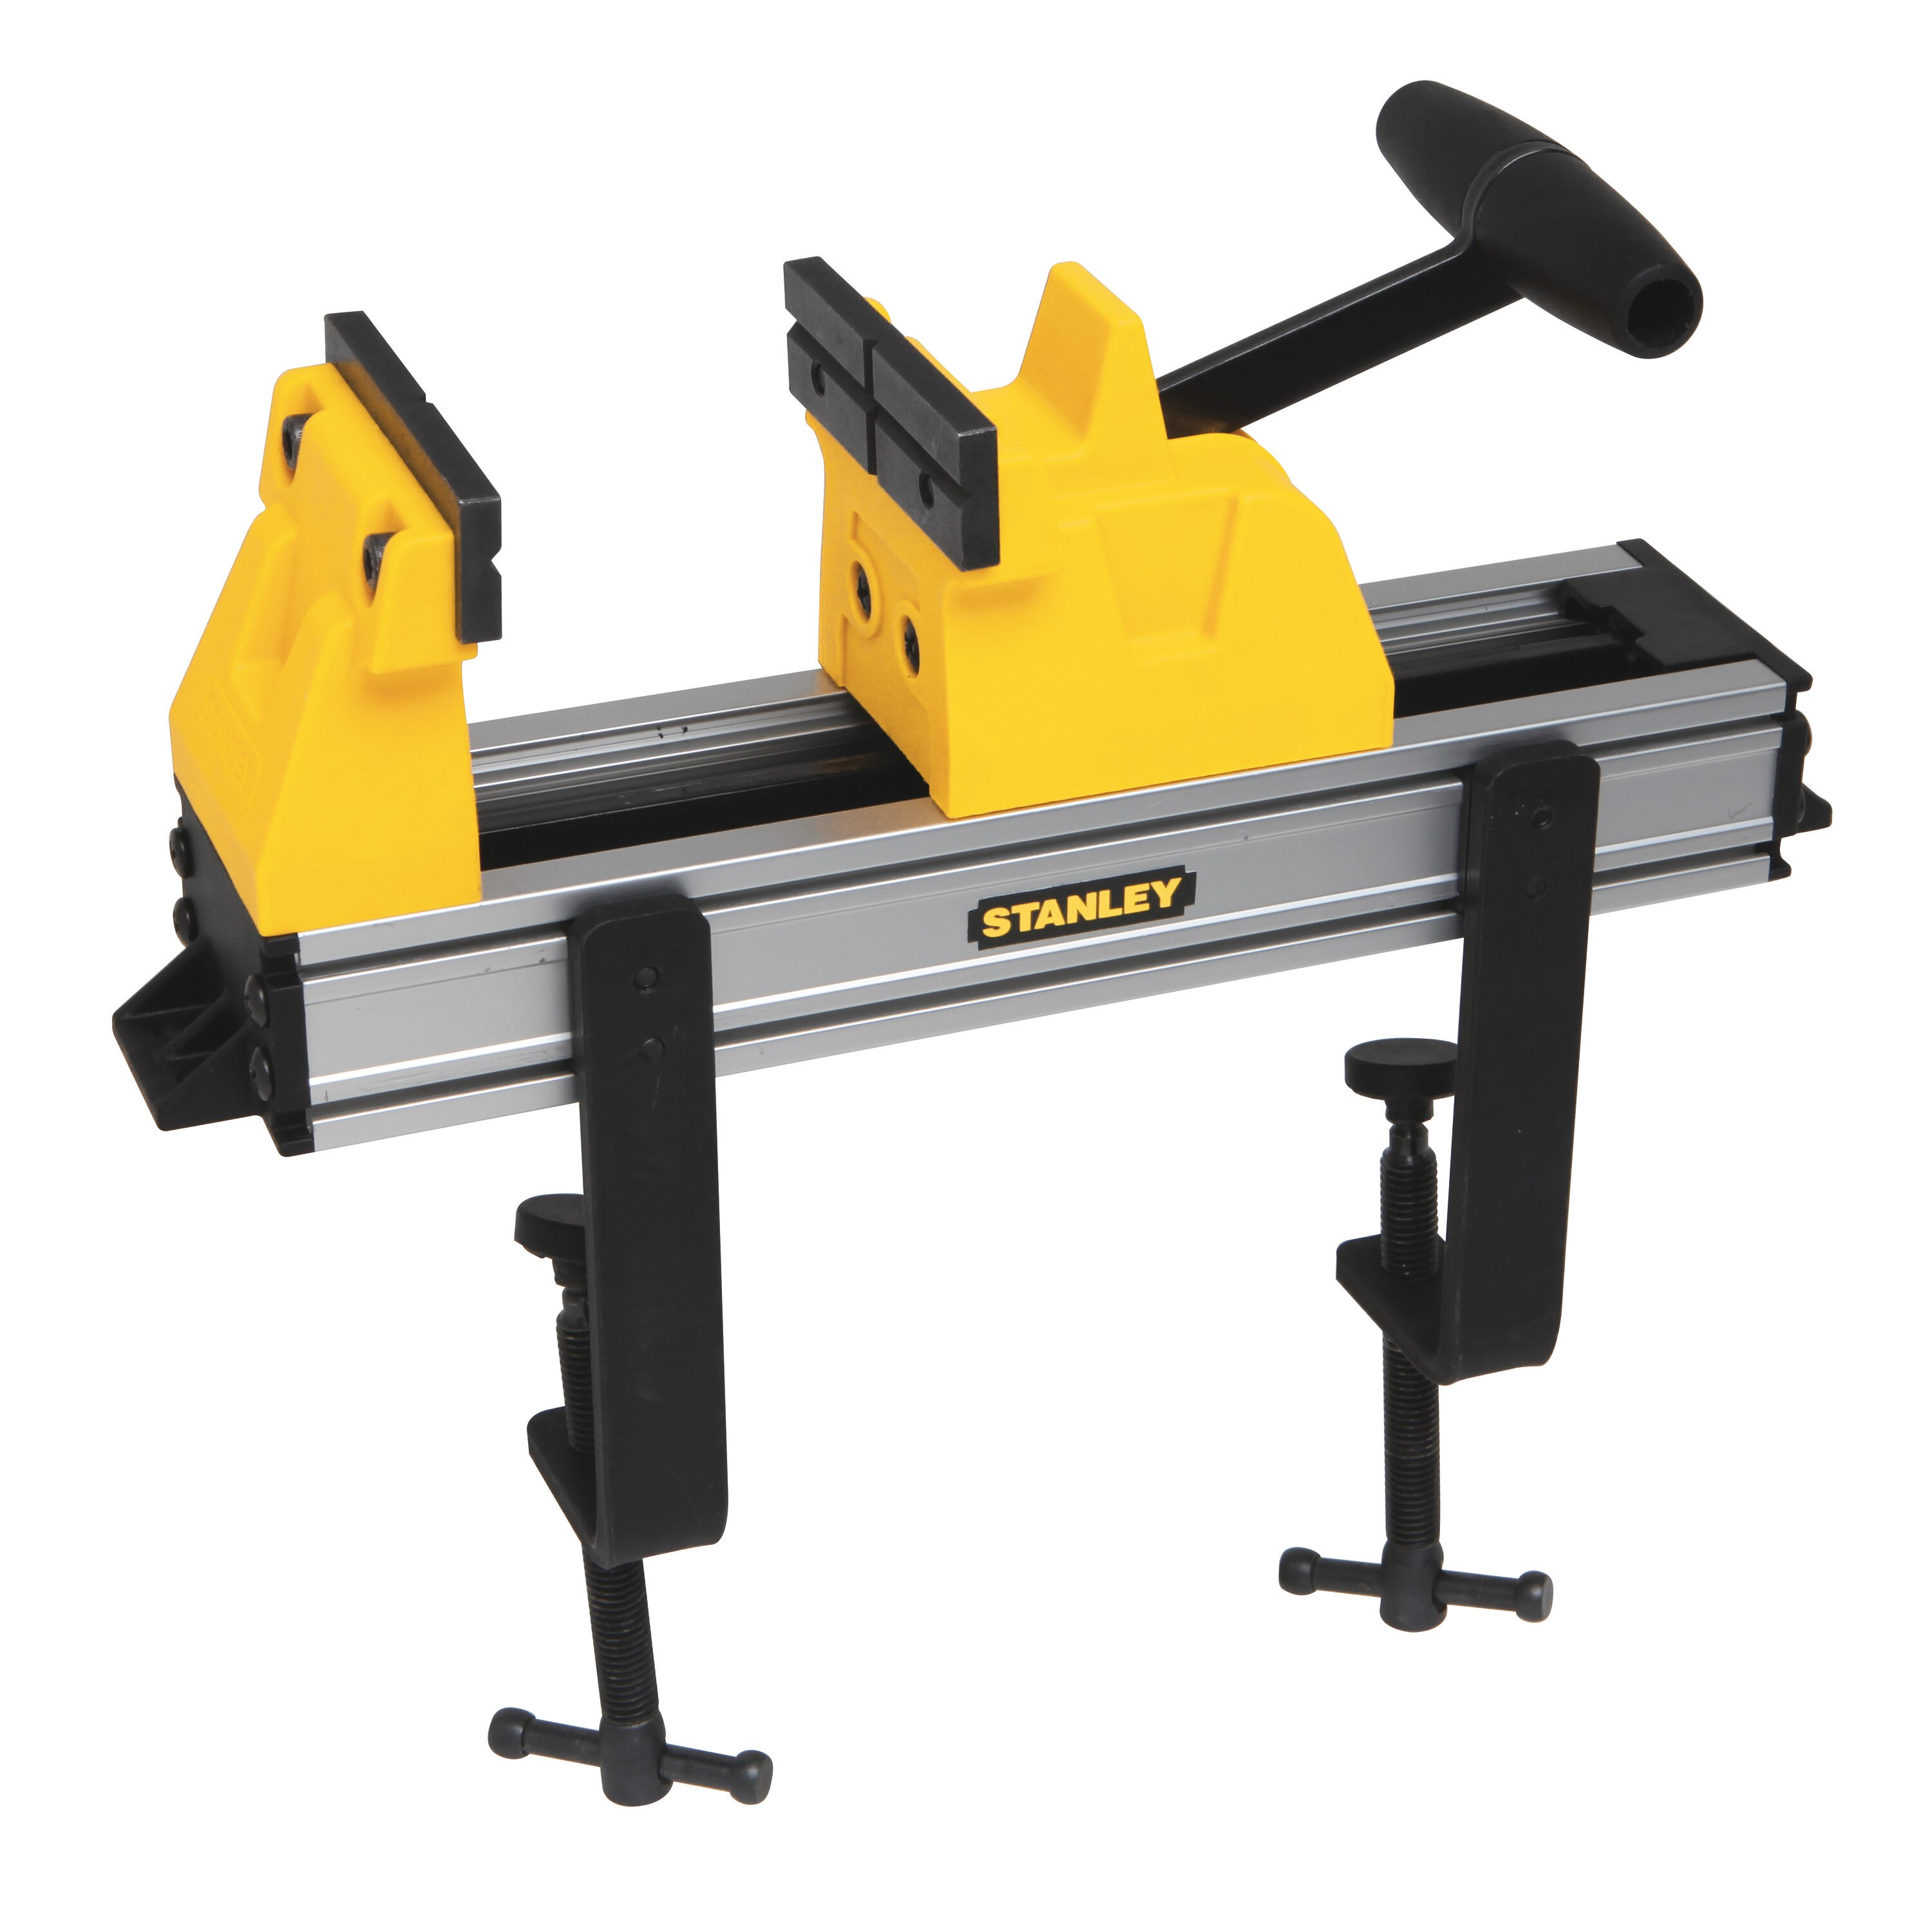 Stanley Tools - 438 Jaw Capacity Quick Vise - STHT83179